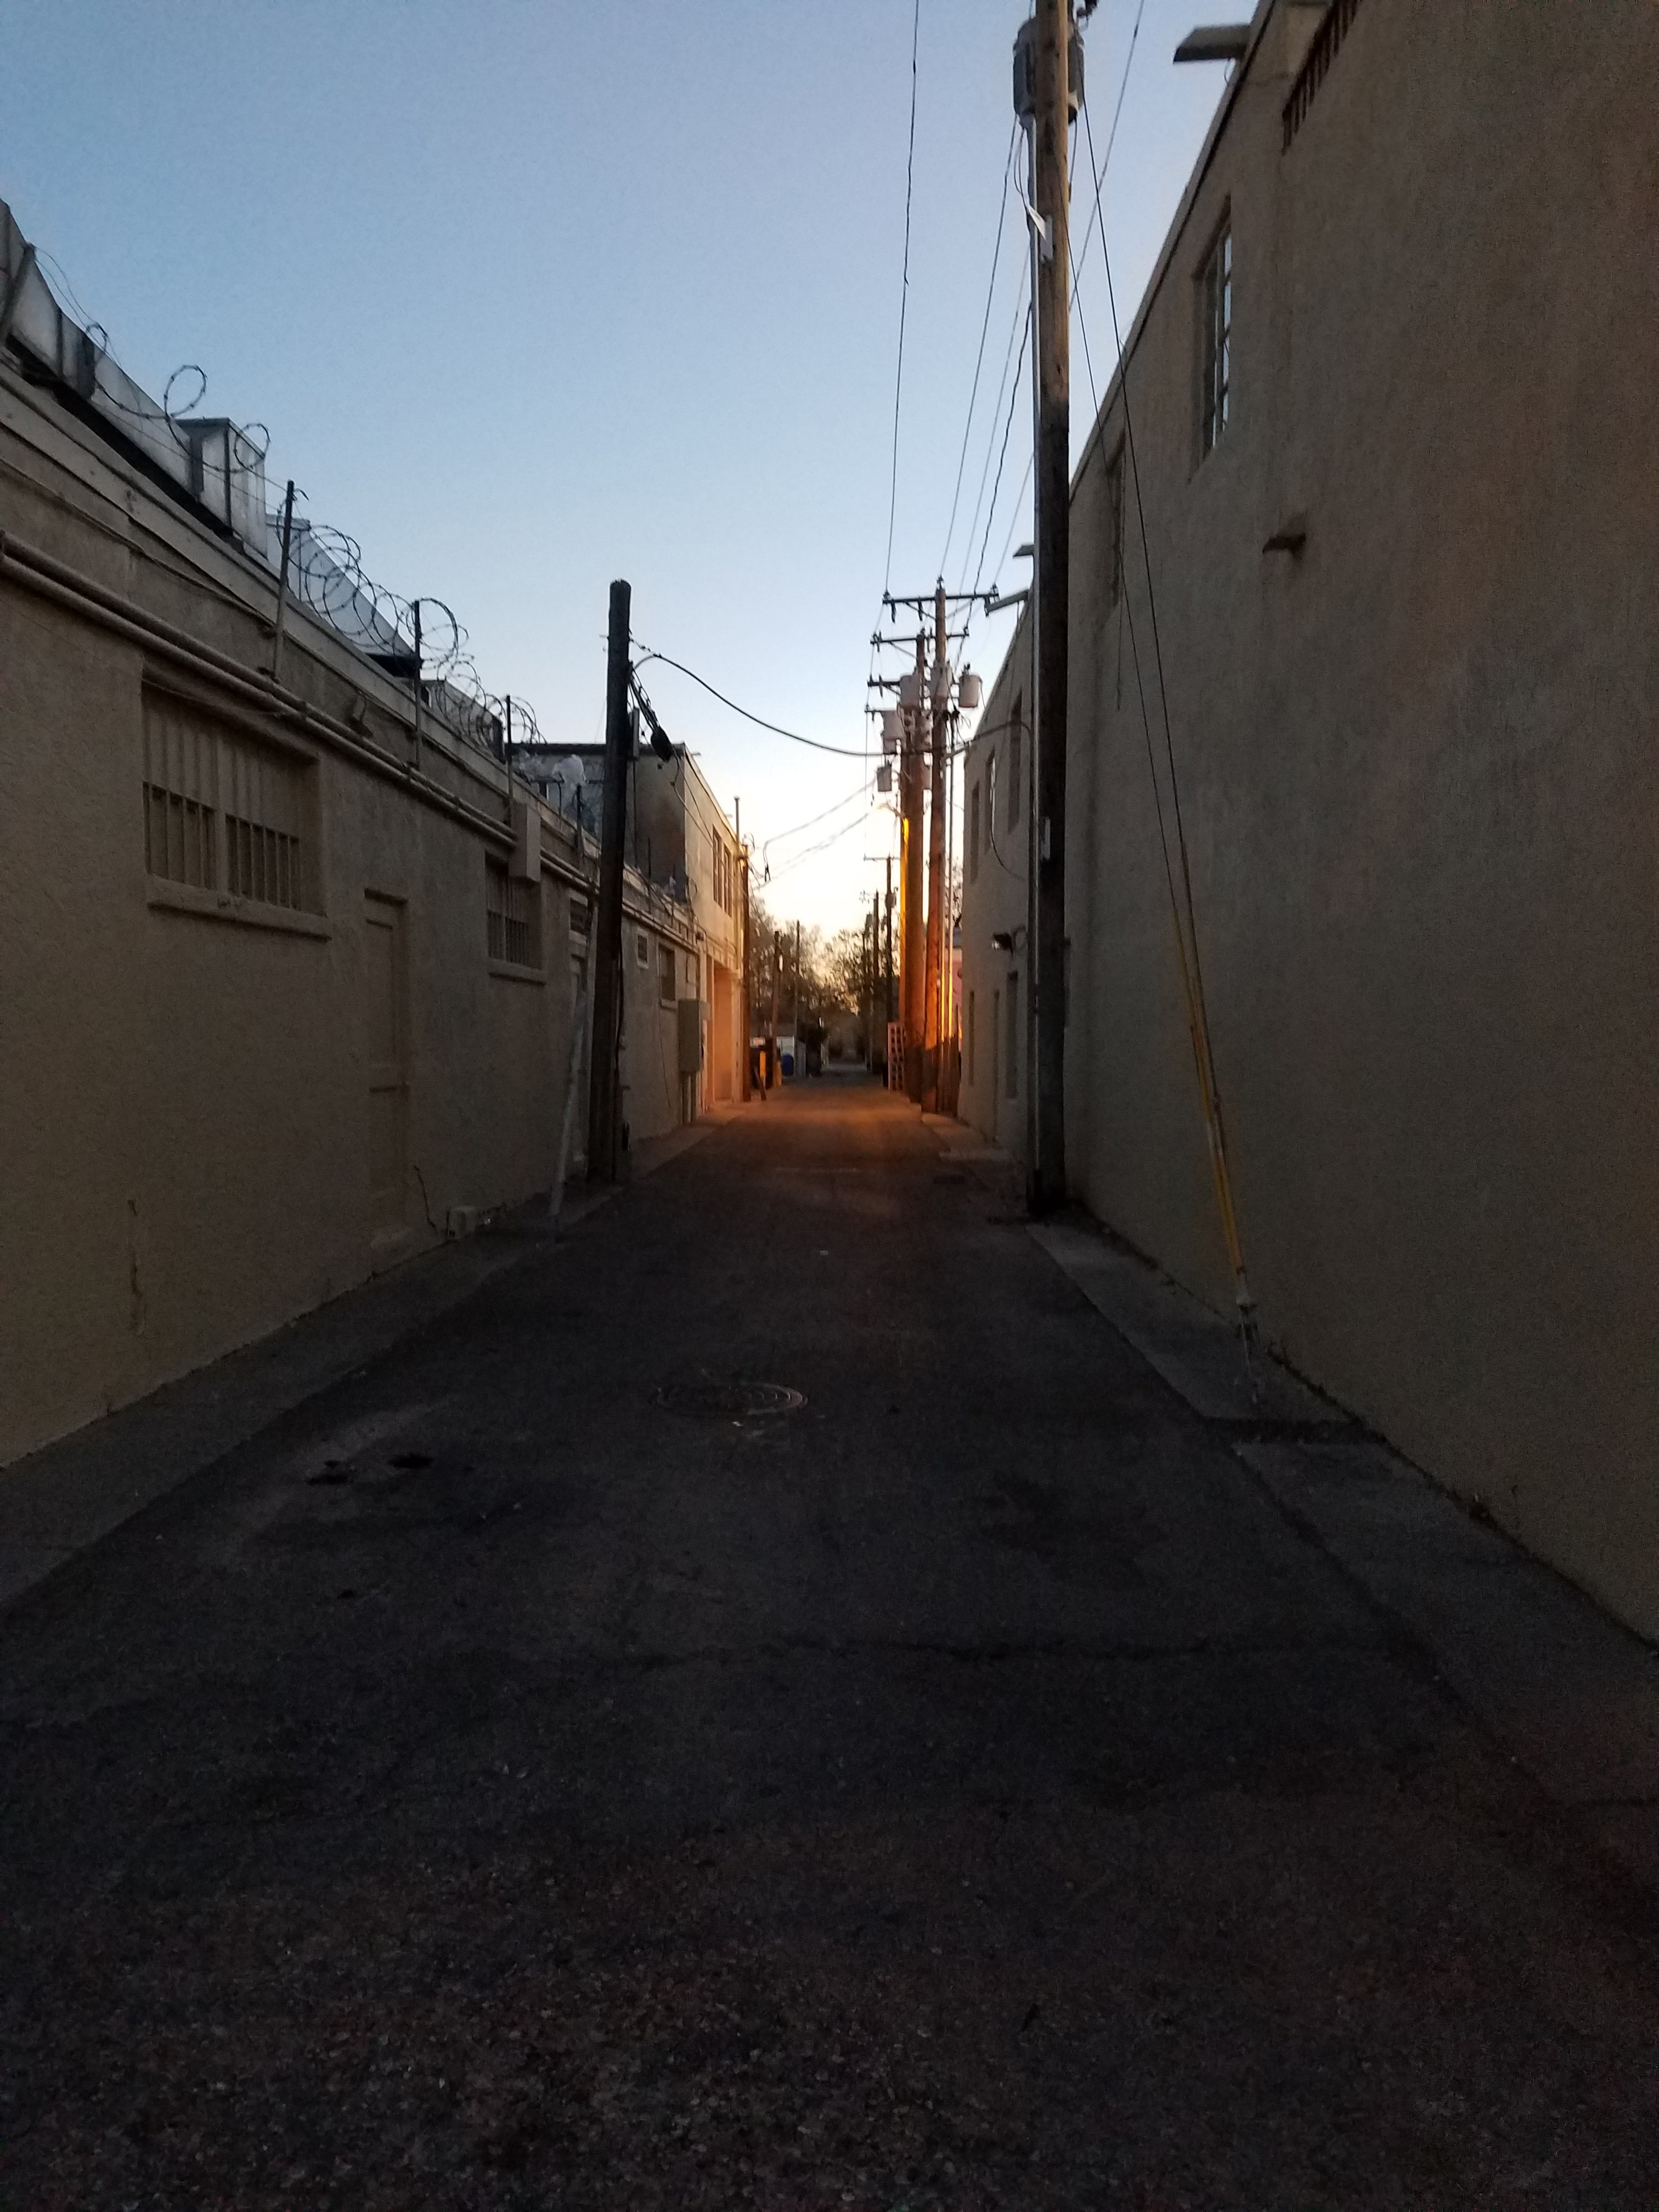 An alley between two beige buildings at dusk. The building to the left has blocked off windows and barbed wire coiled along the top. 1940s style telephone poles line both sides of the alley.